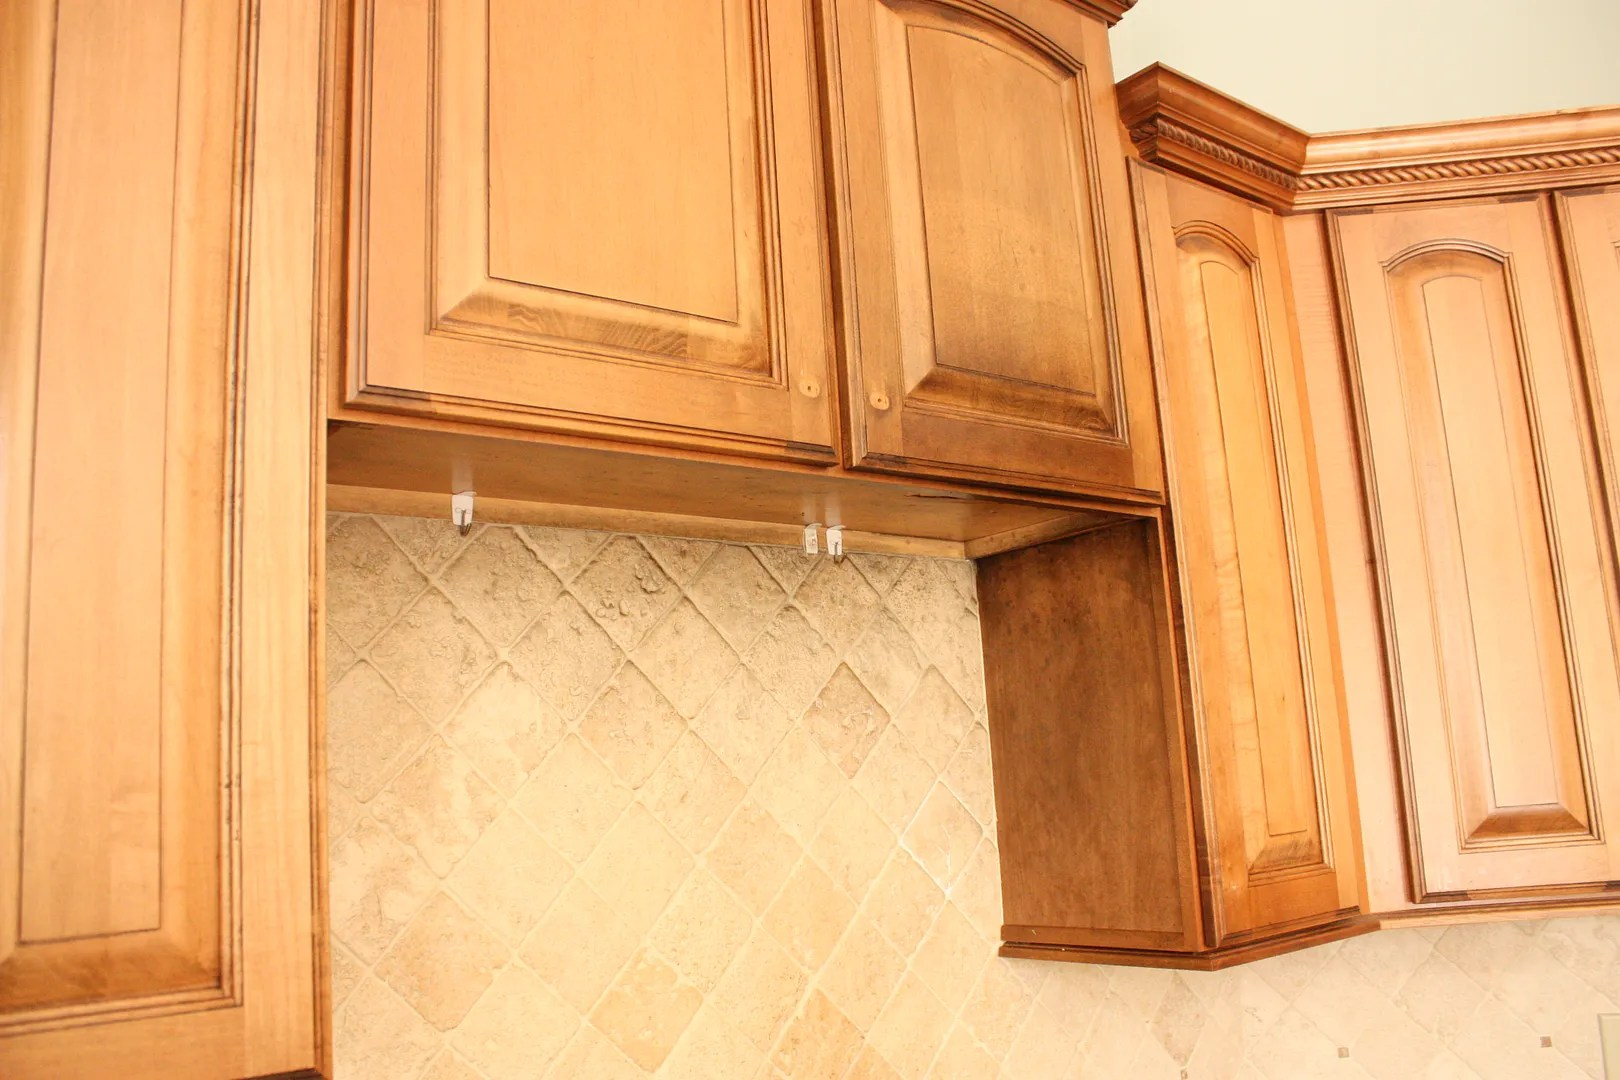 remove grease buildup from kitchen cabinets lighting fixtures for low ceilings down to earth - bower power